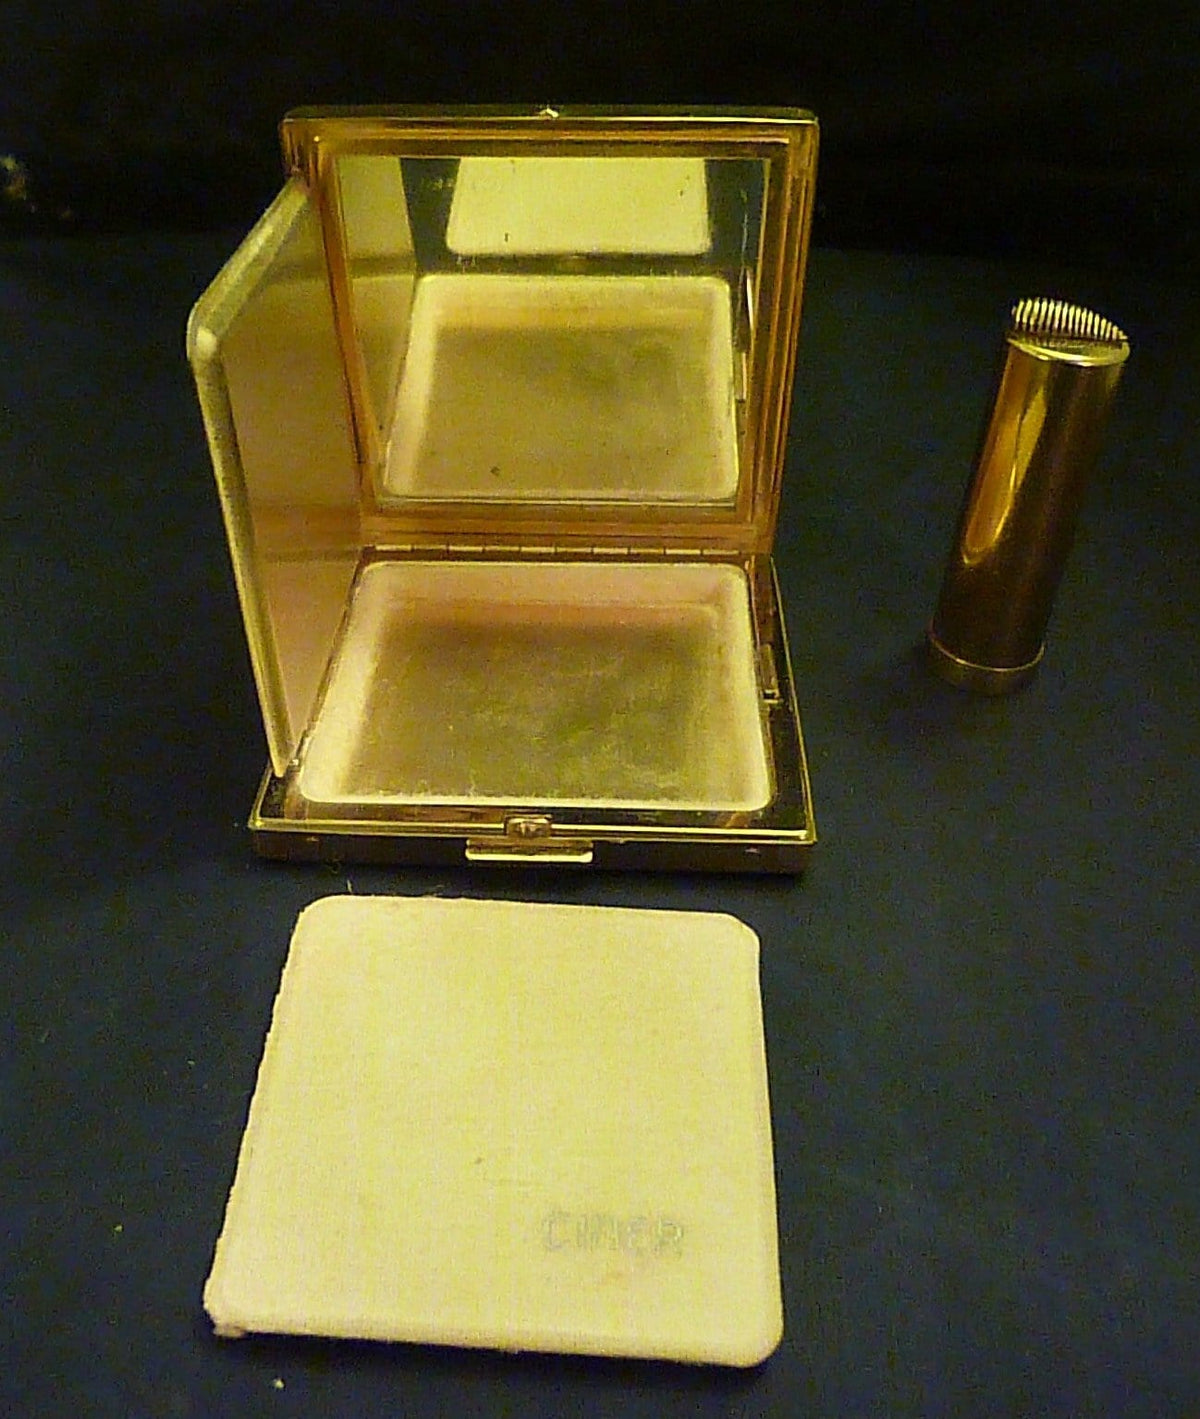 Vintage Ciner Art Deco compact & lipstick vintage powder compacts vintage lipsticks compacts for sale compact duos powder mirrors gifts - The Vintage Compact Shop